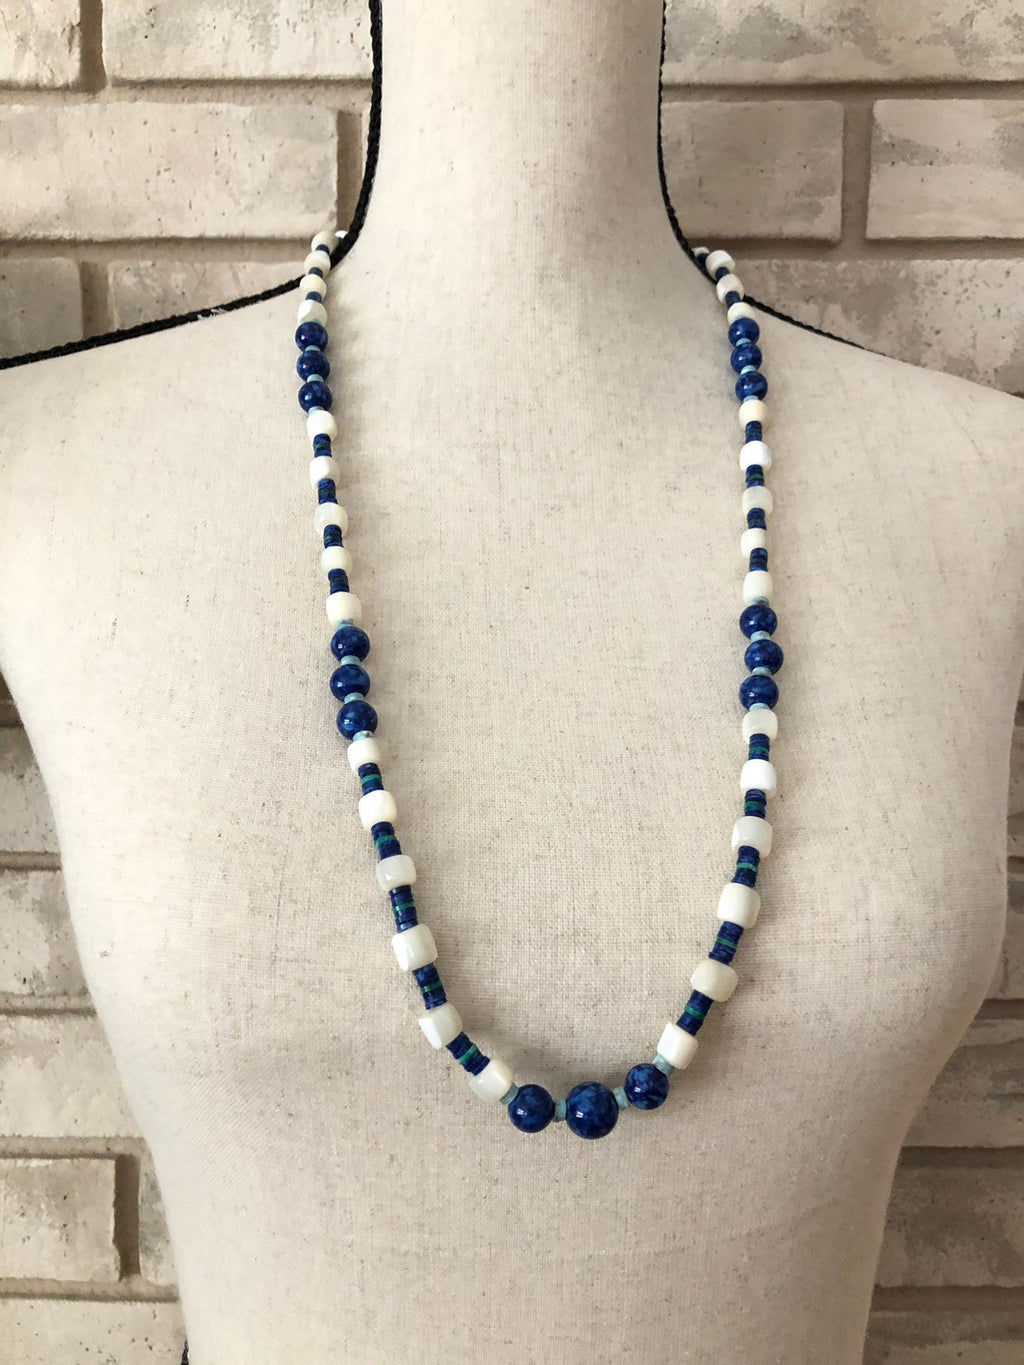 update alt-text with template Kenneth Jay Lane Blue Puka Shell MOP Boho Vintage Layering Necklace-Necklaces & Pendants-Kenneth Jay Lane-[trending designer jewelry]-[kenneth jay lane KJL jewelry]-[Sustainable Fashion]